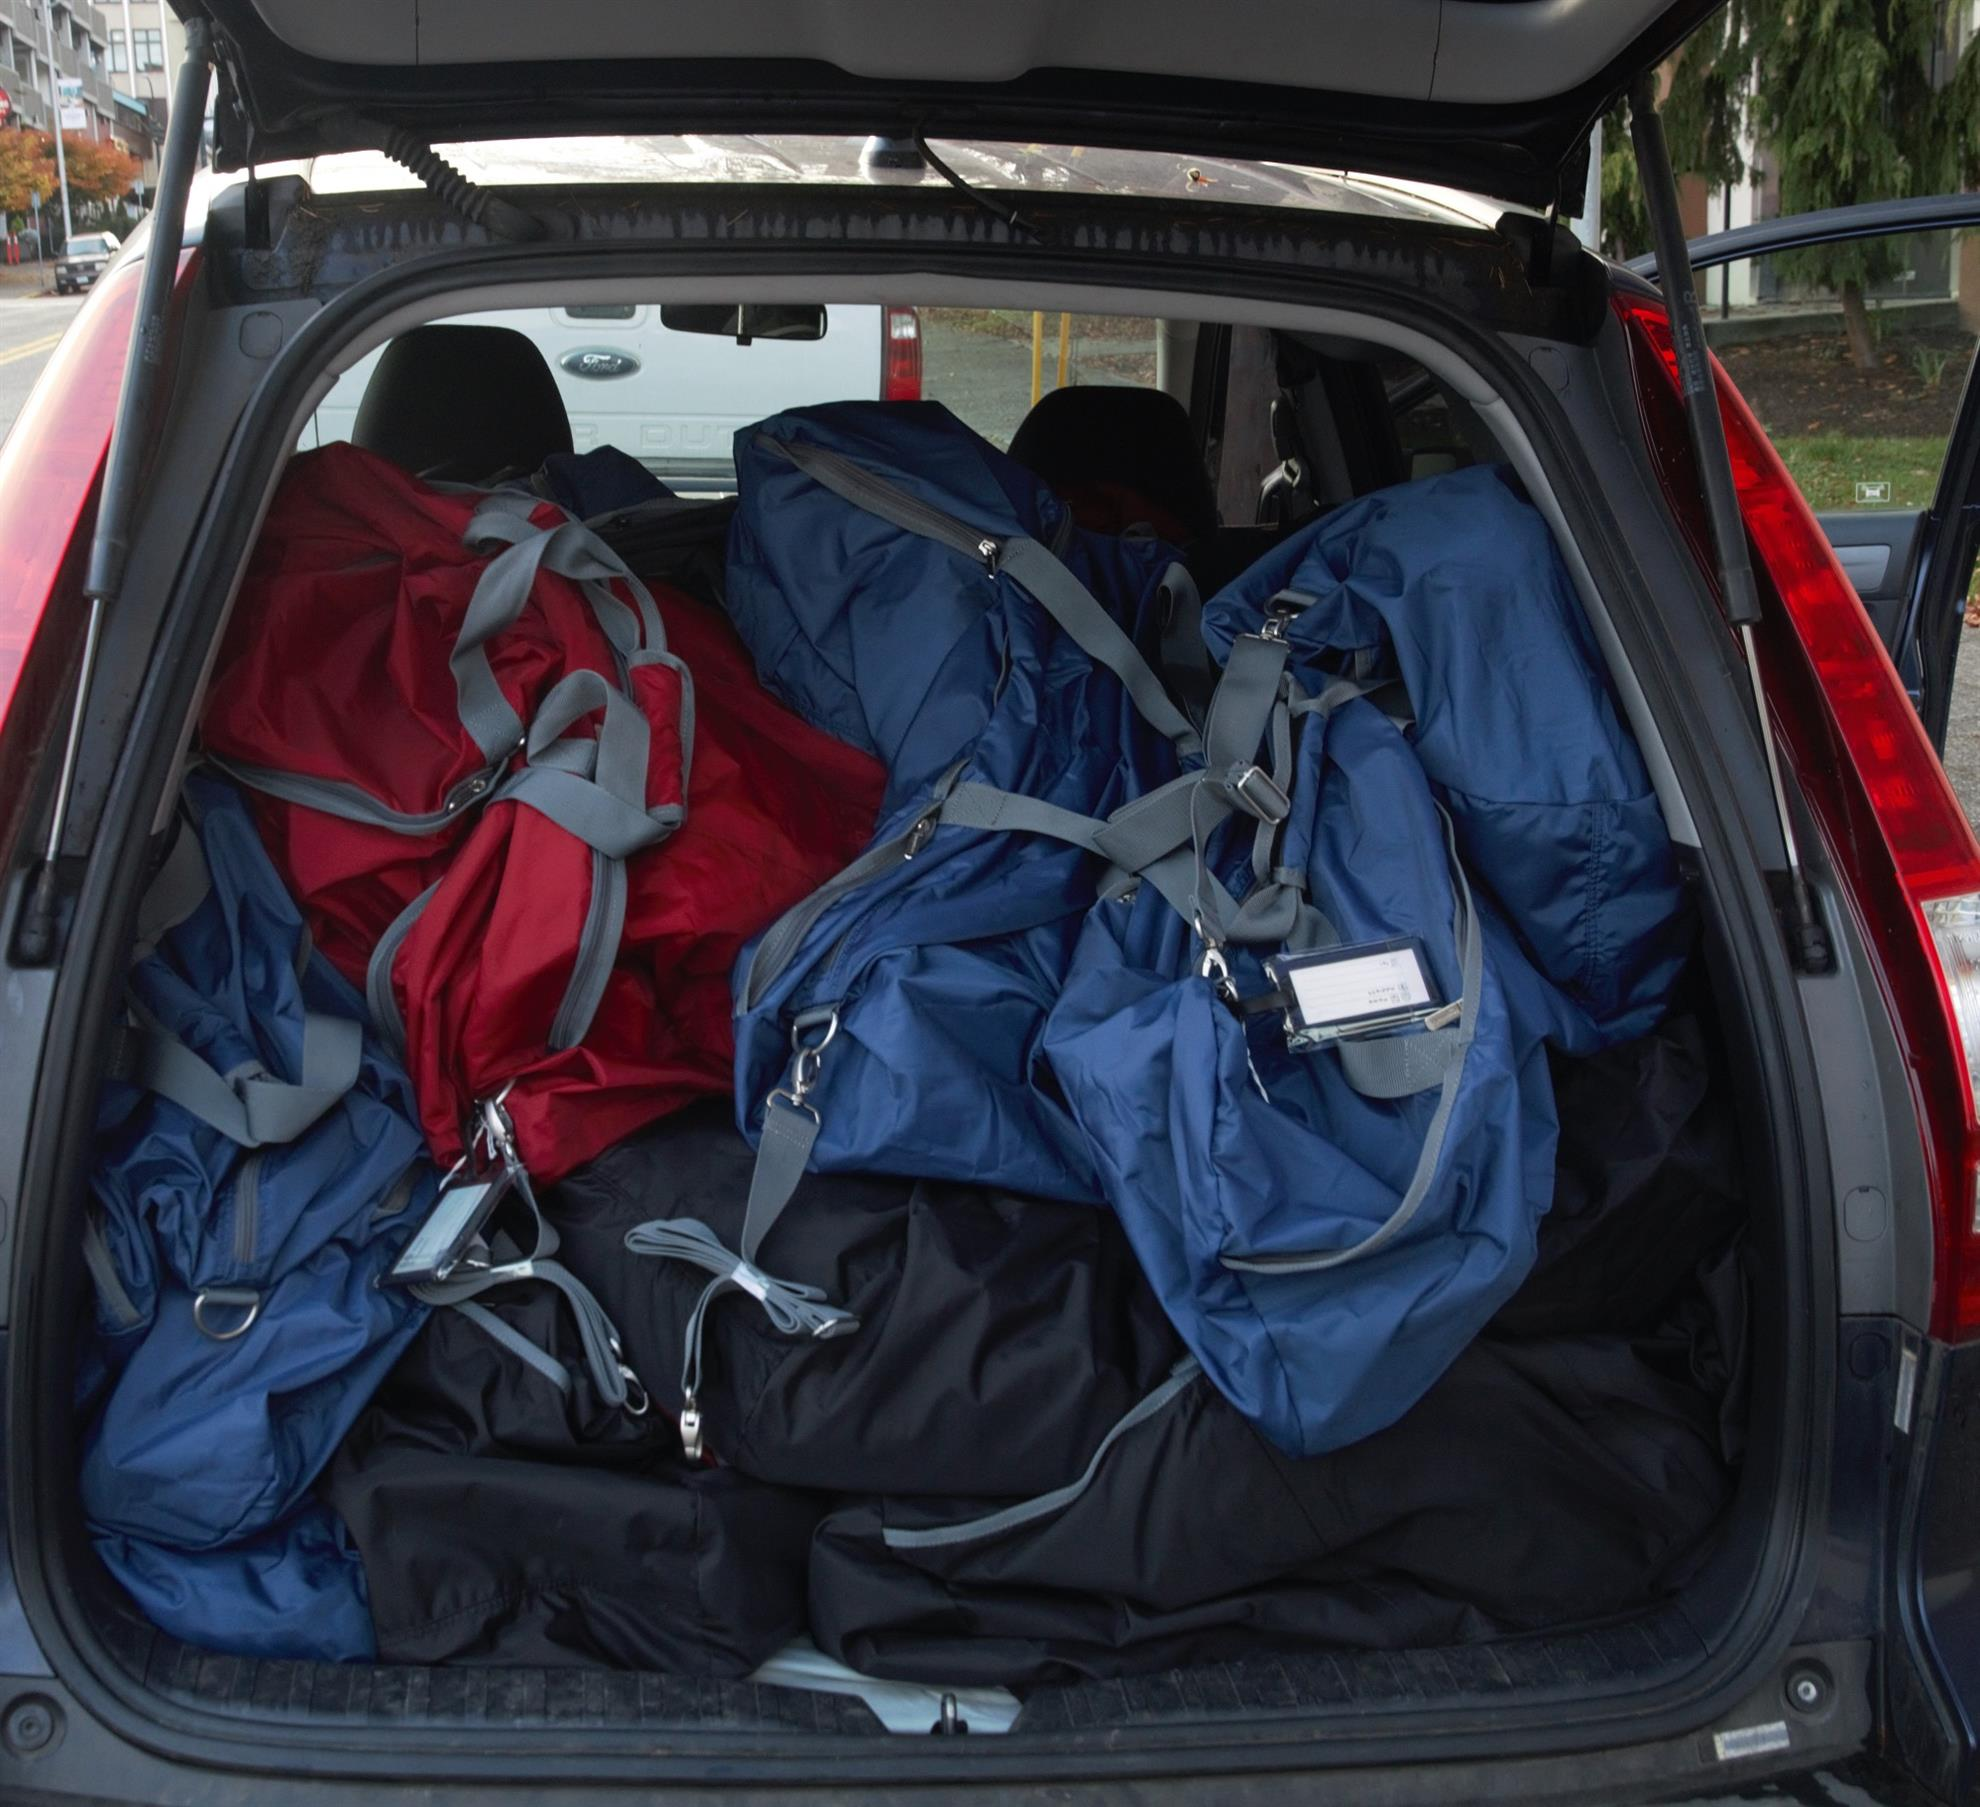 Stories Rotary Club Of Lake Stevens 9139 Town Car Fuse Diagram Forums Edmunds Duffel Bags 42 With Hygiene And School Supplies Were Delivered To The Foundation Church In Everett Who Works Dshs Snohomish County Courts